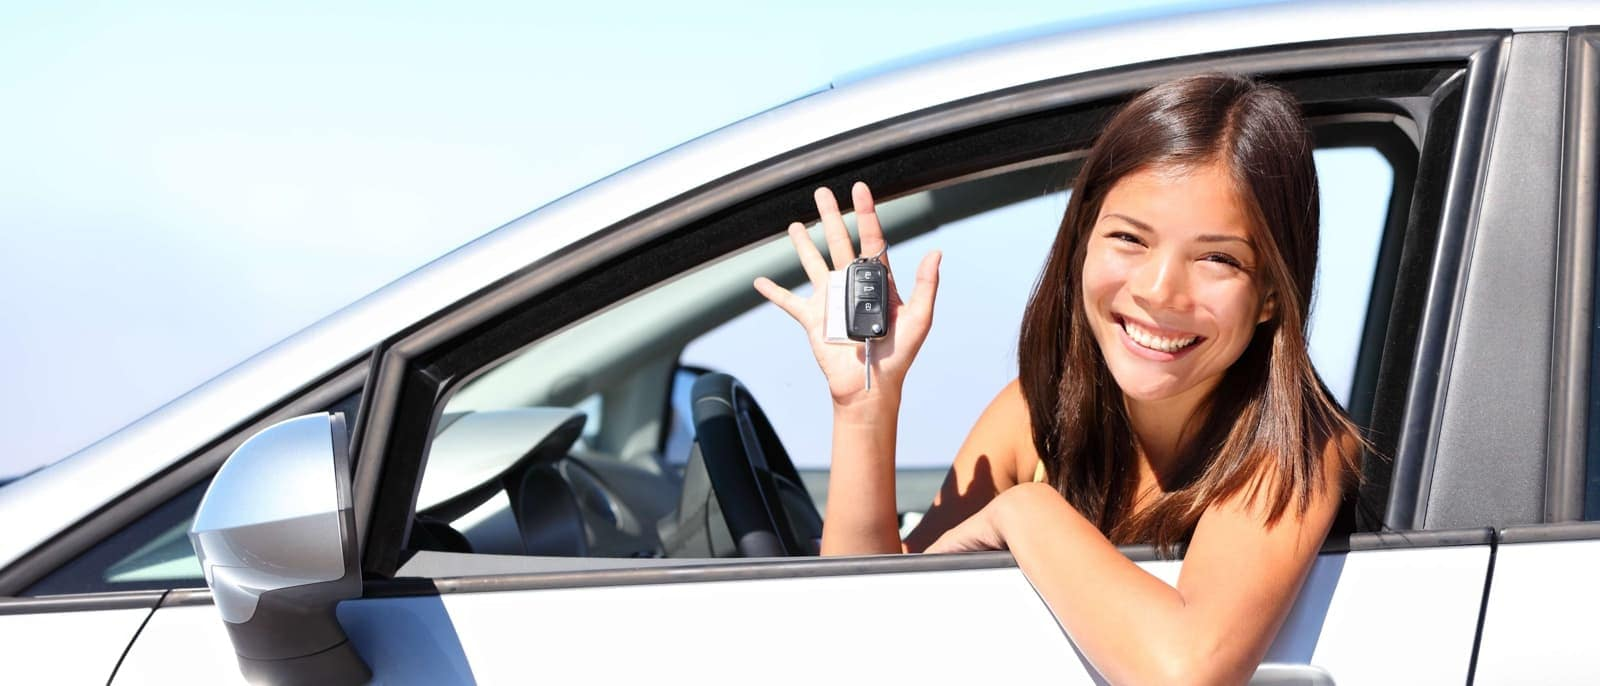 woman sitting in her car holding car keys